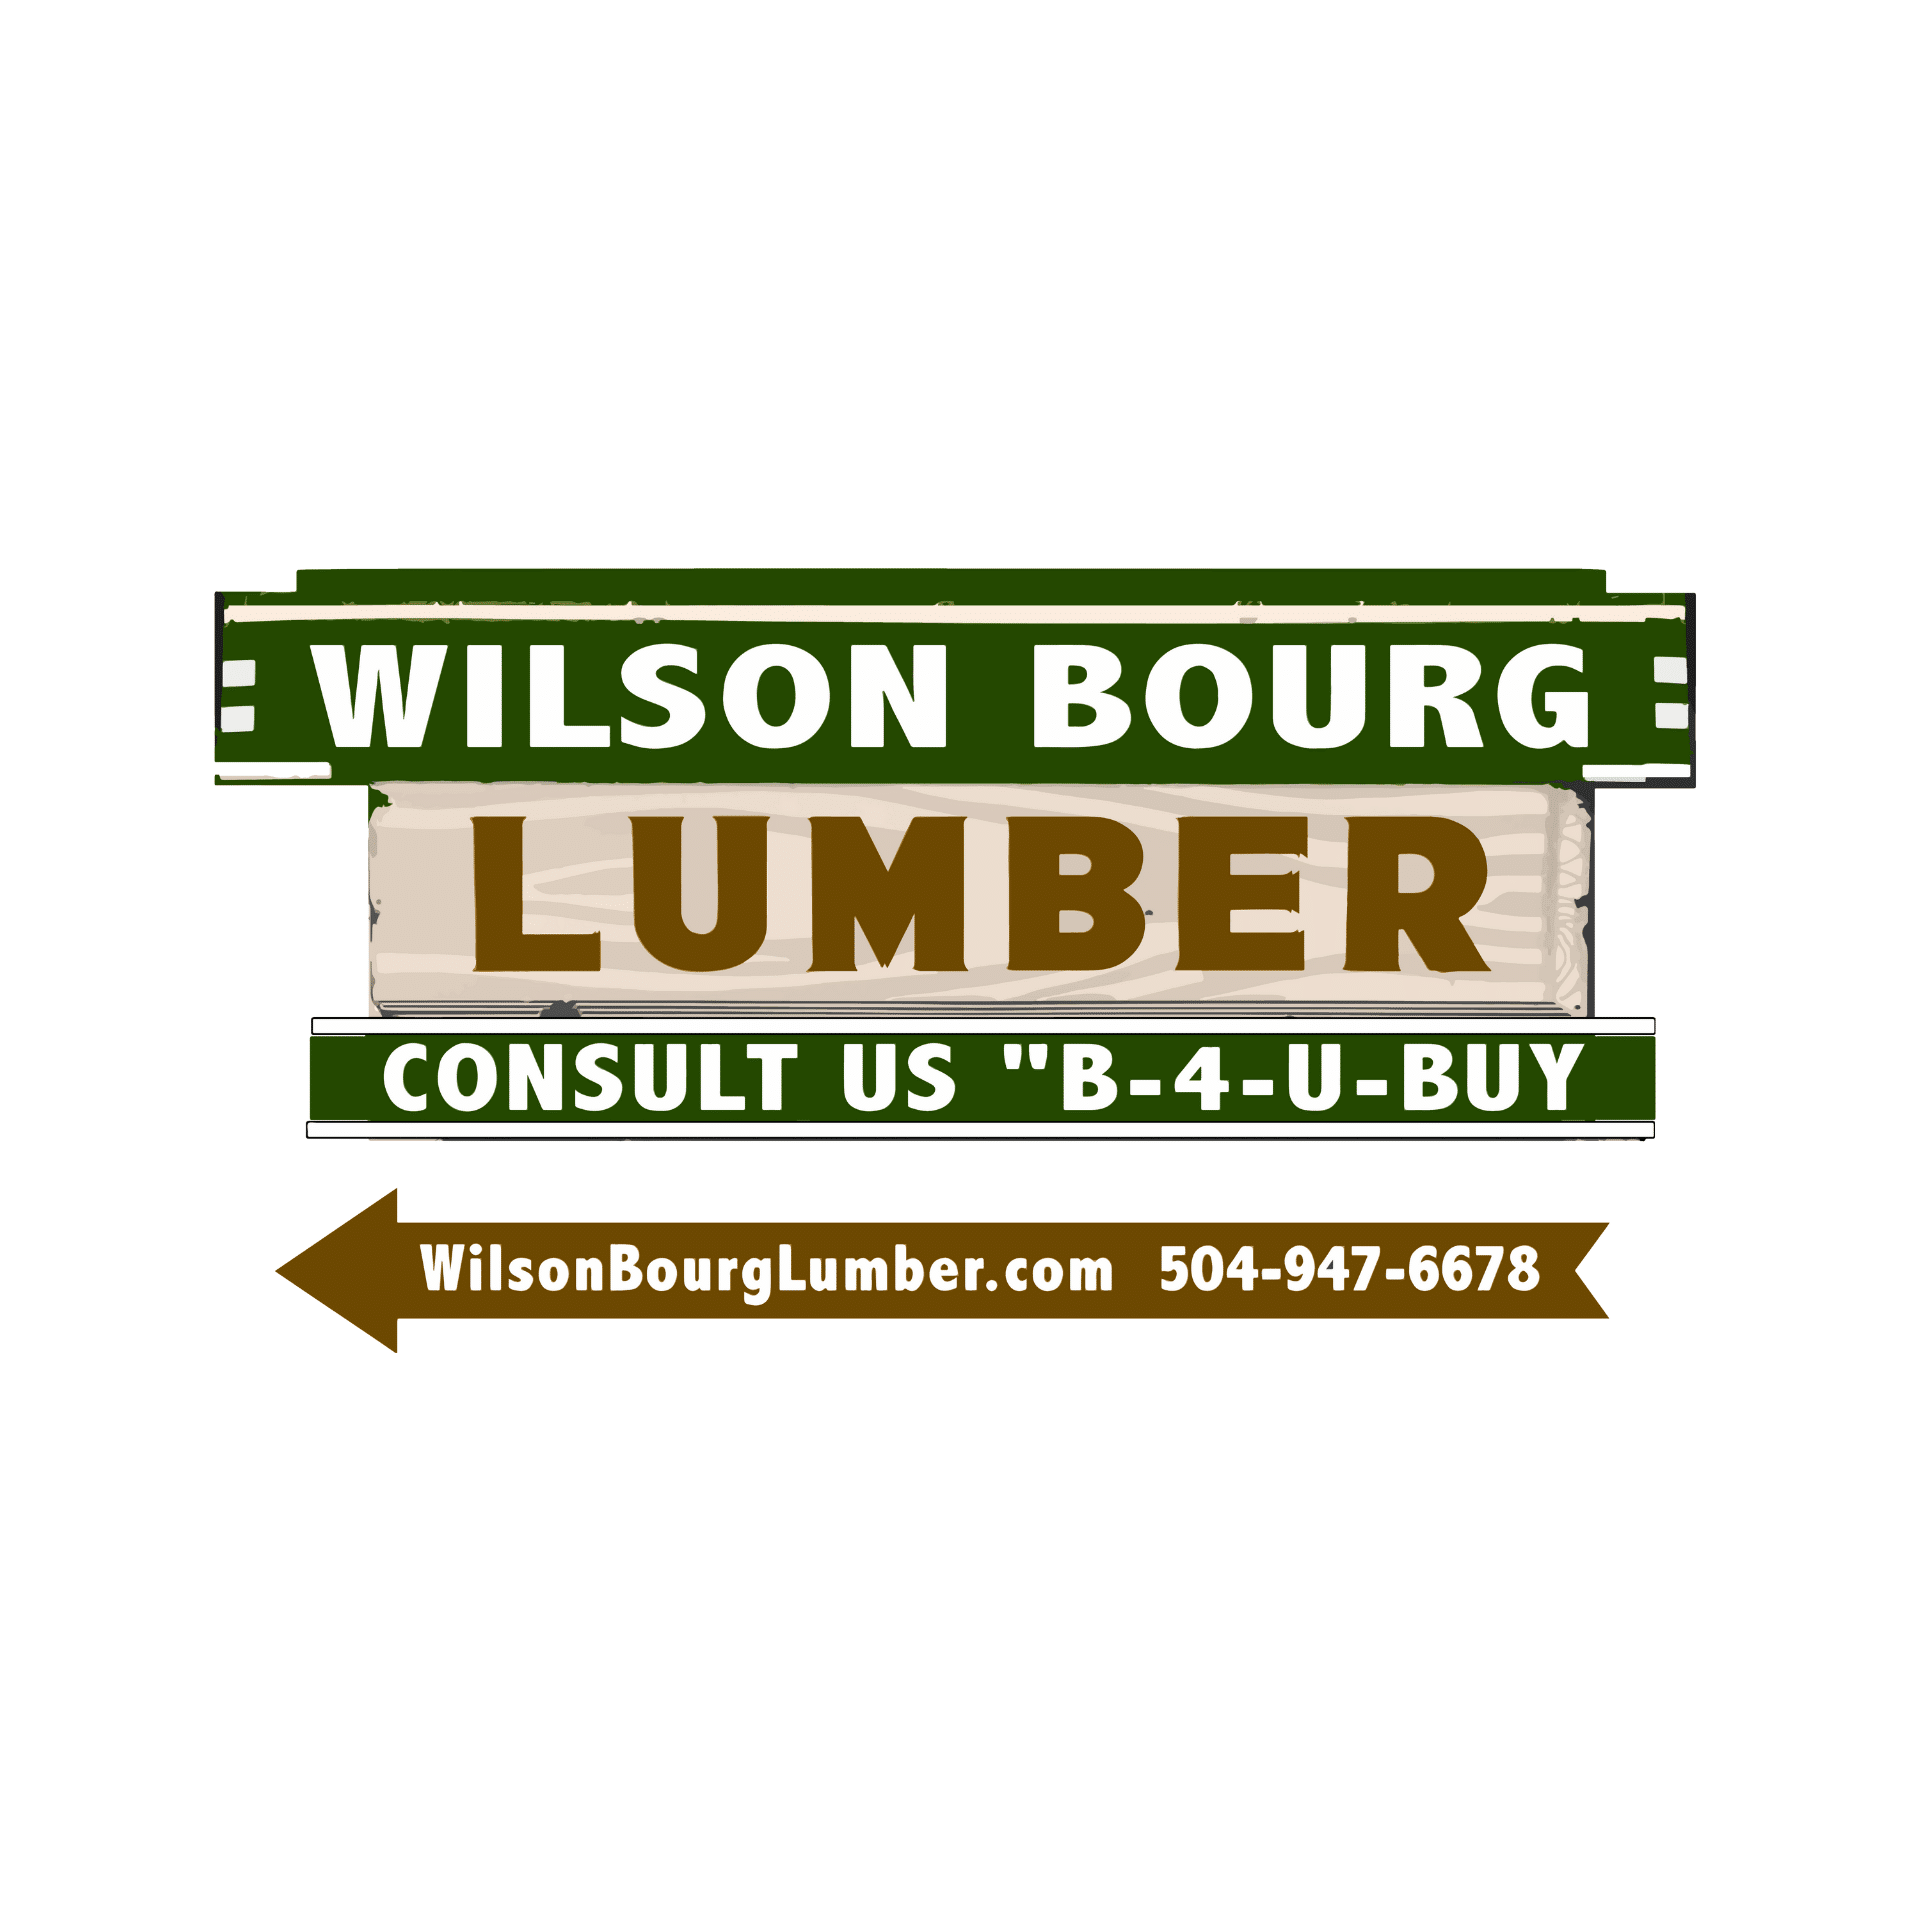 Wilson Bourg Lumber & Building Supply